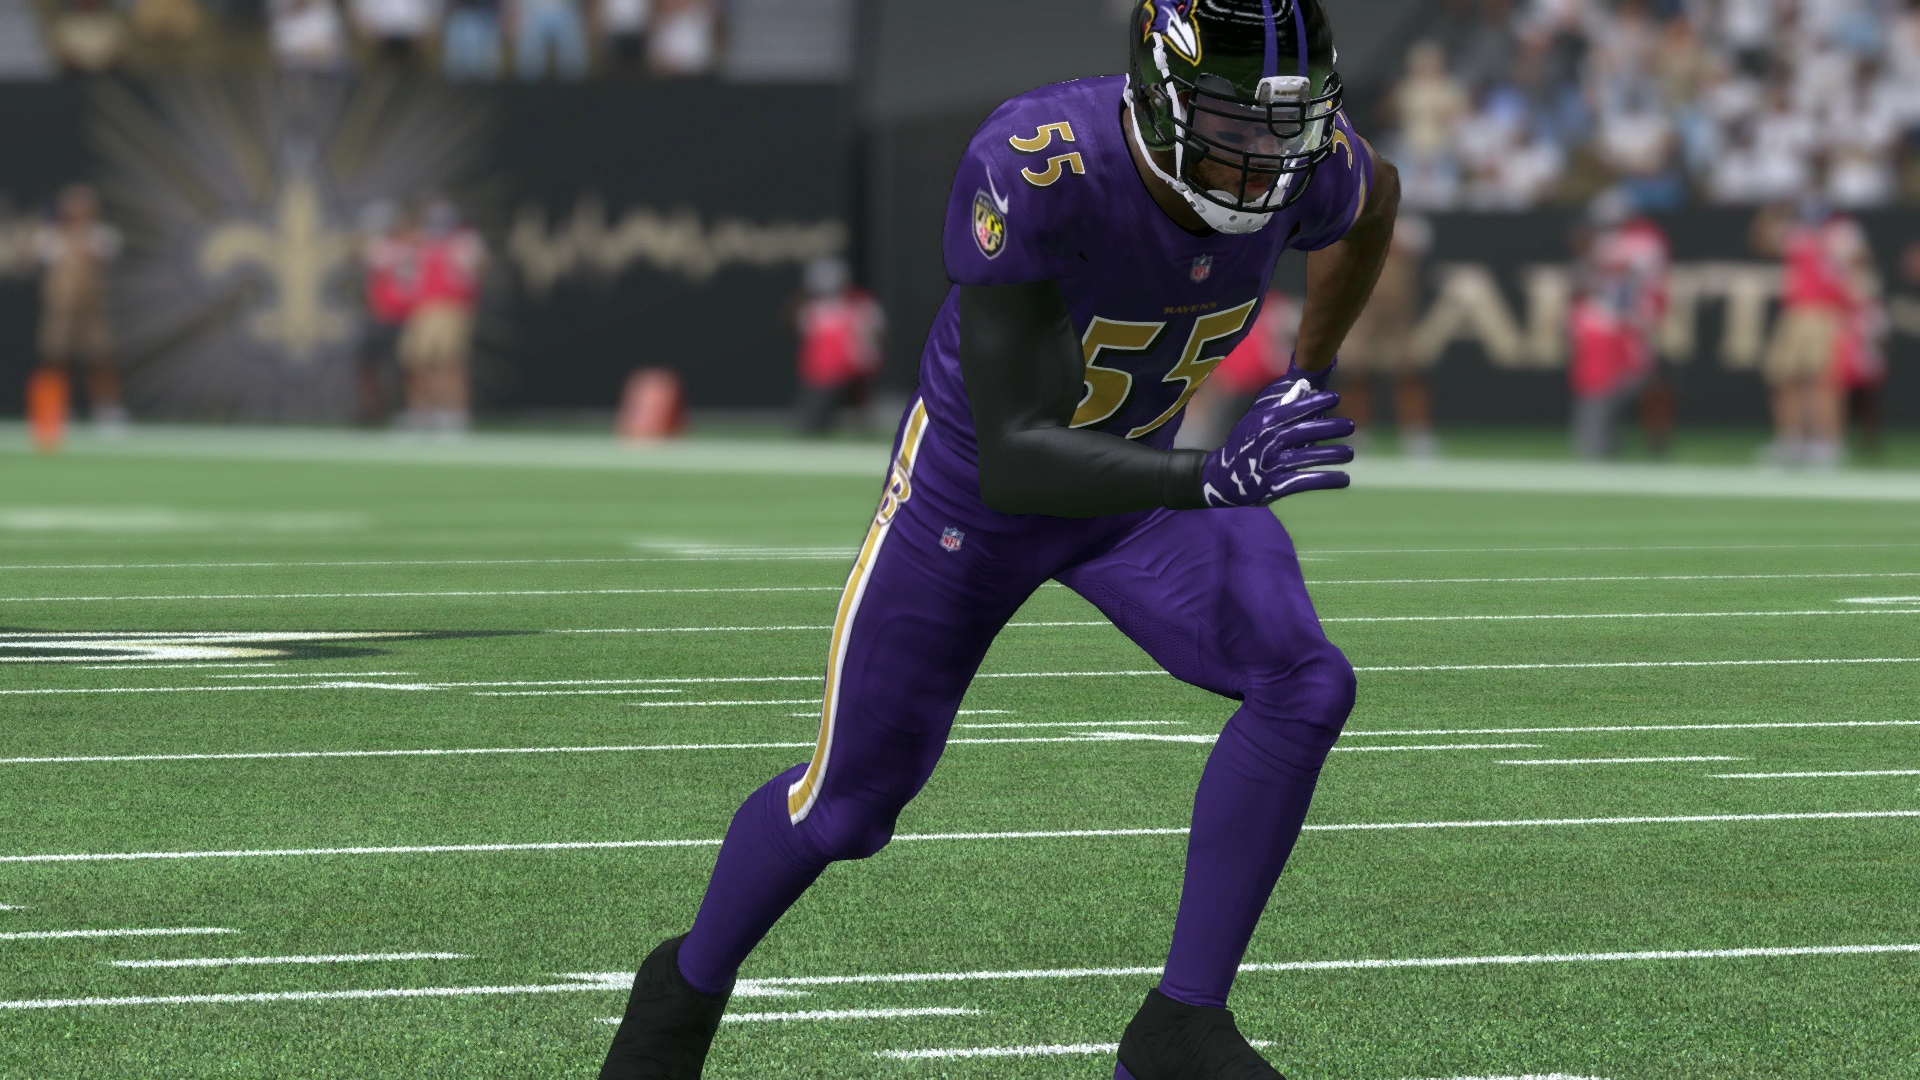 ravens color rush jersey